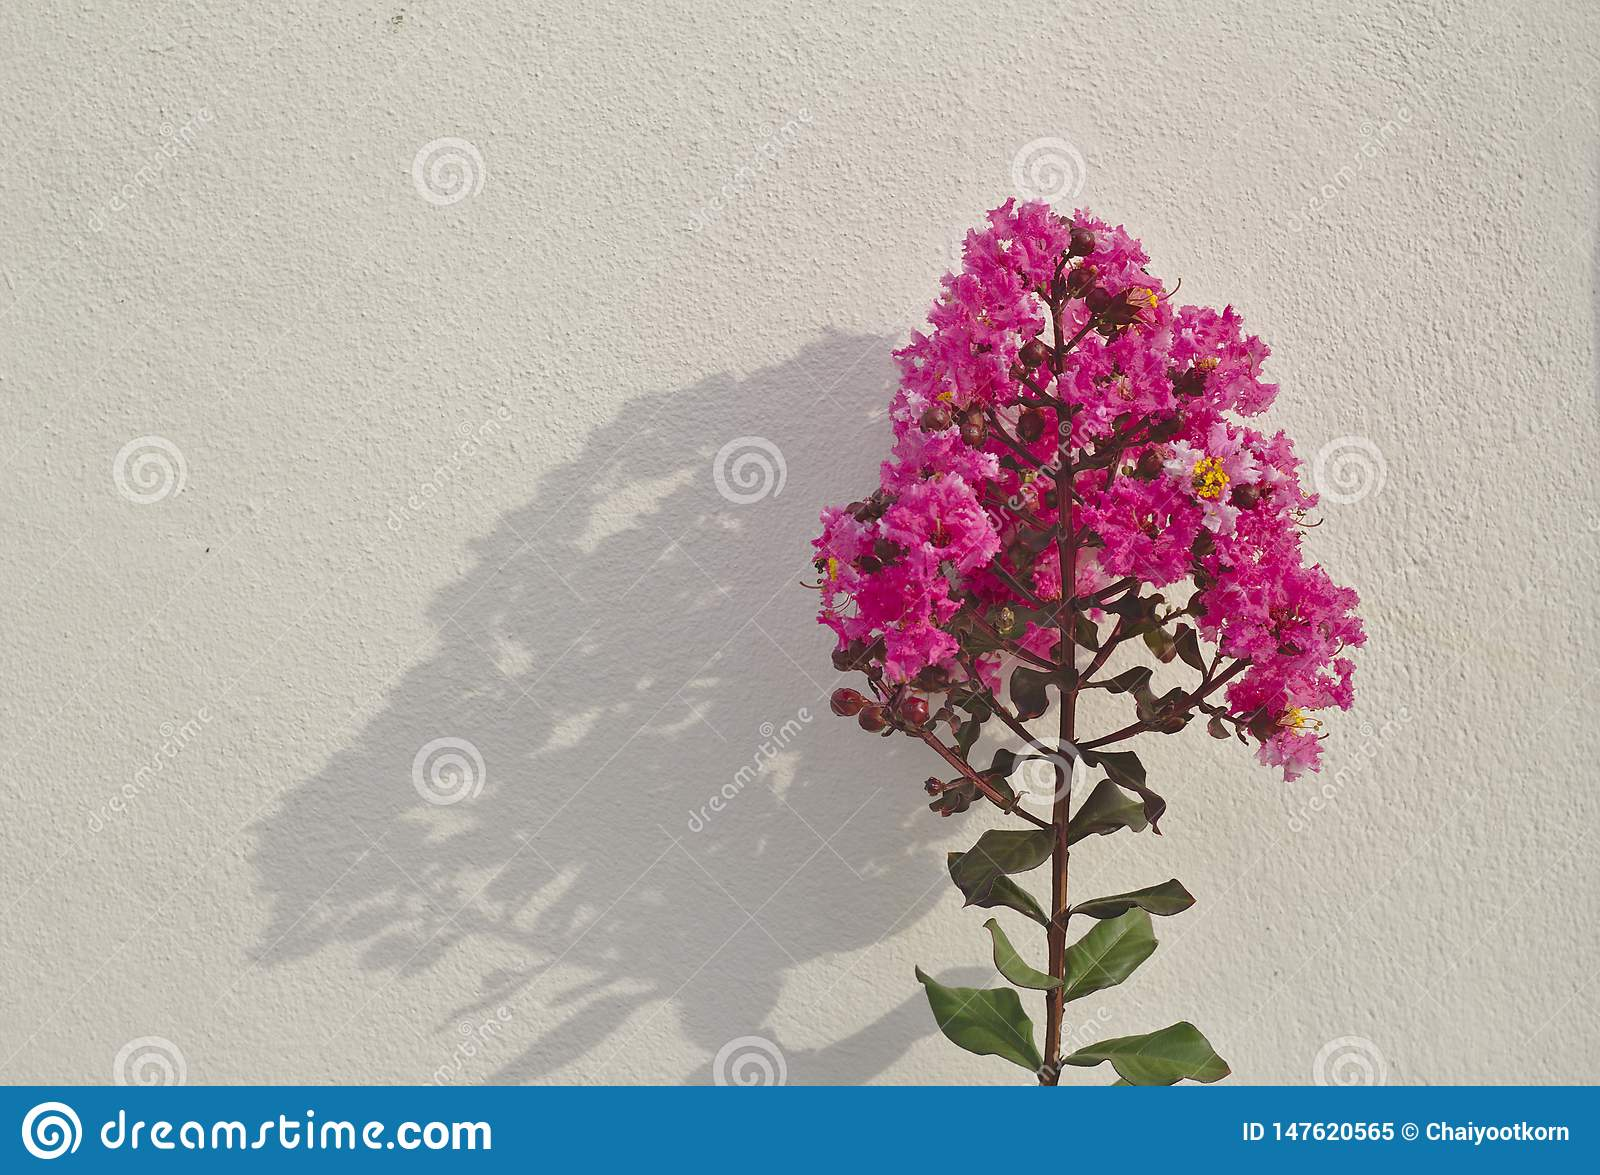 Crepe myrtle tree, bright pink inflorescence Green leaves Reflection background on a white wall